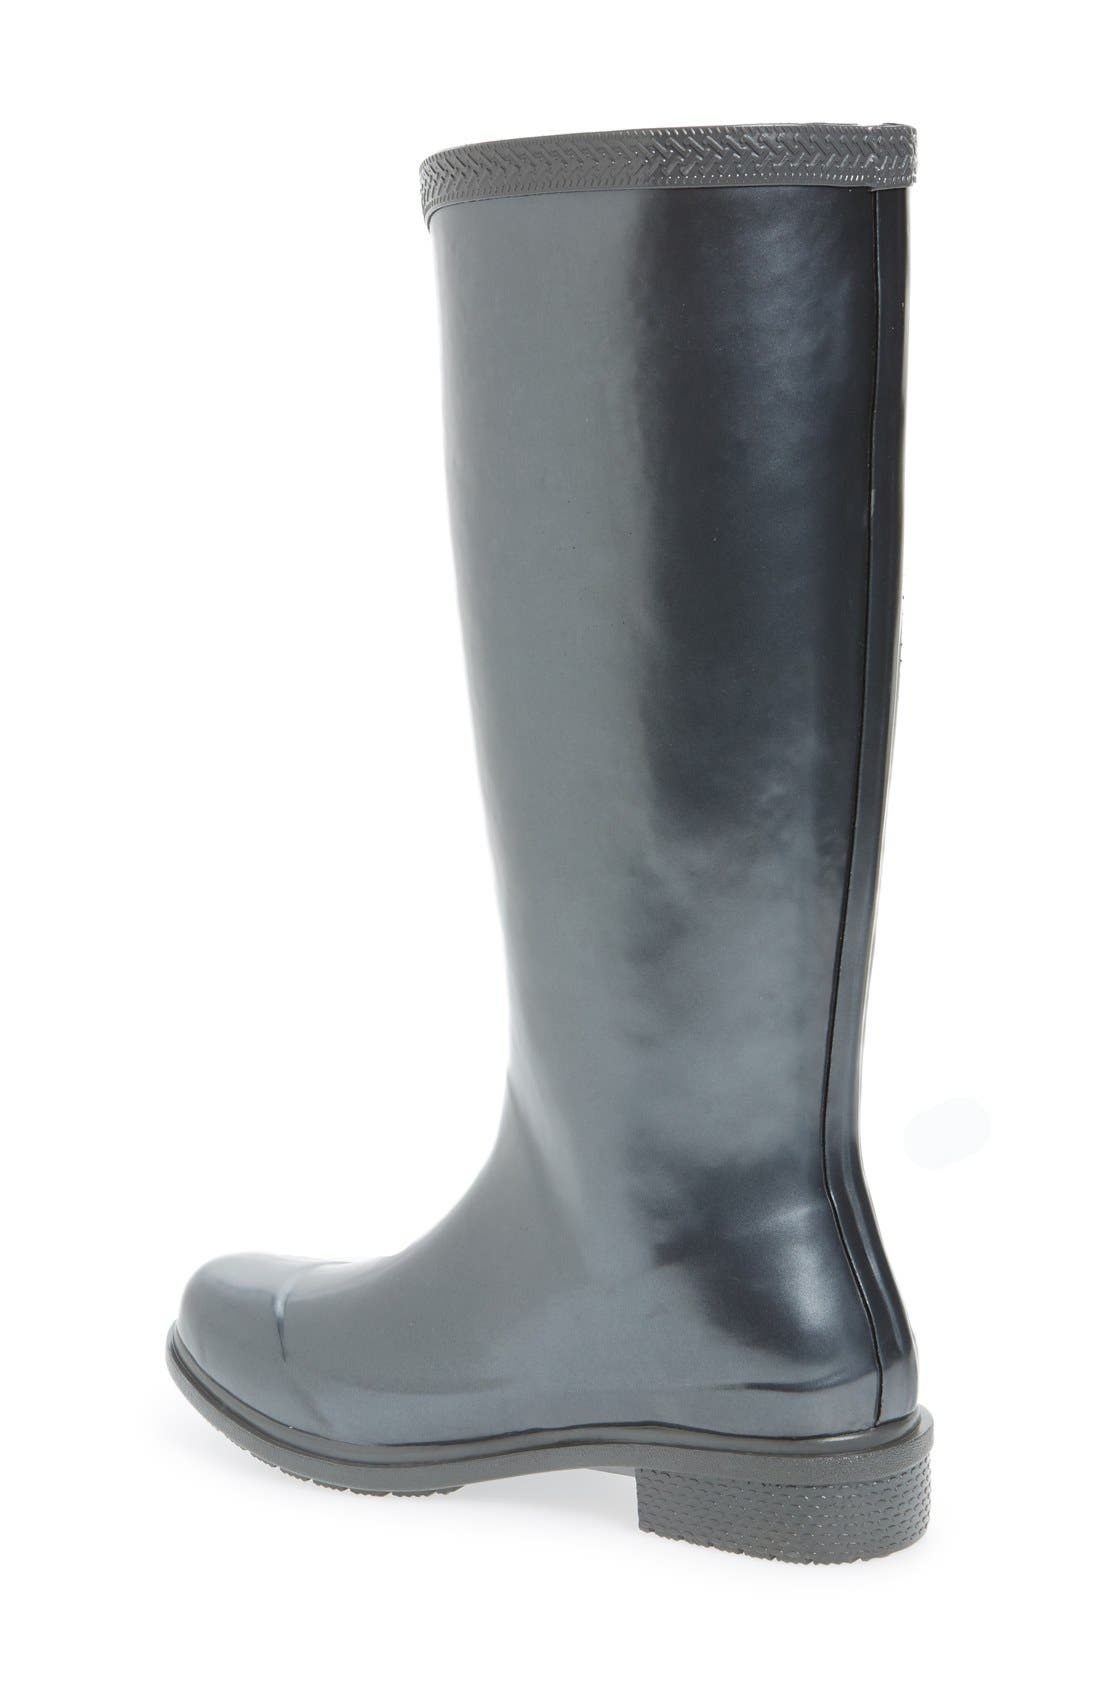 Alternate Image 2  - Havaianas 'Galochas Hi Metallic' Waterproof Rain Boot (Women)